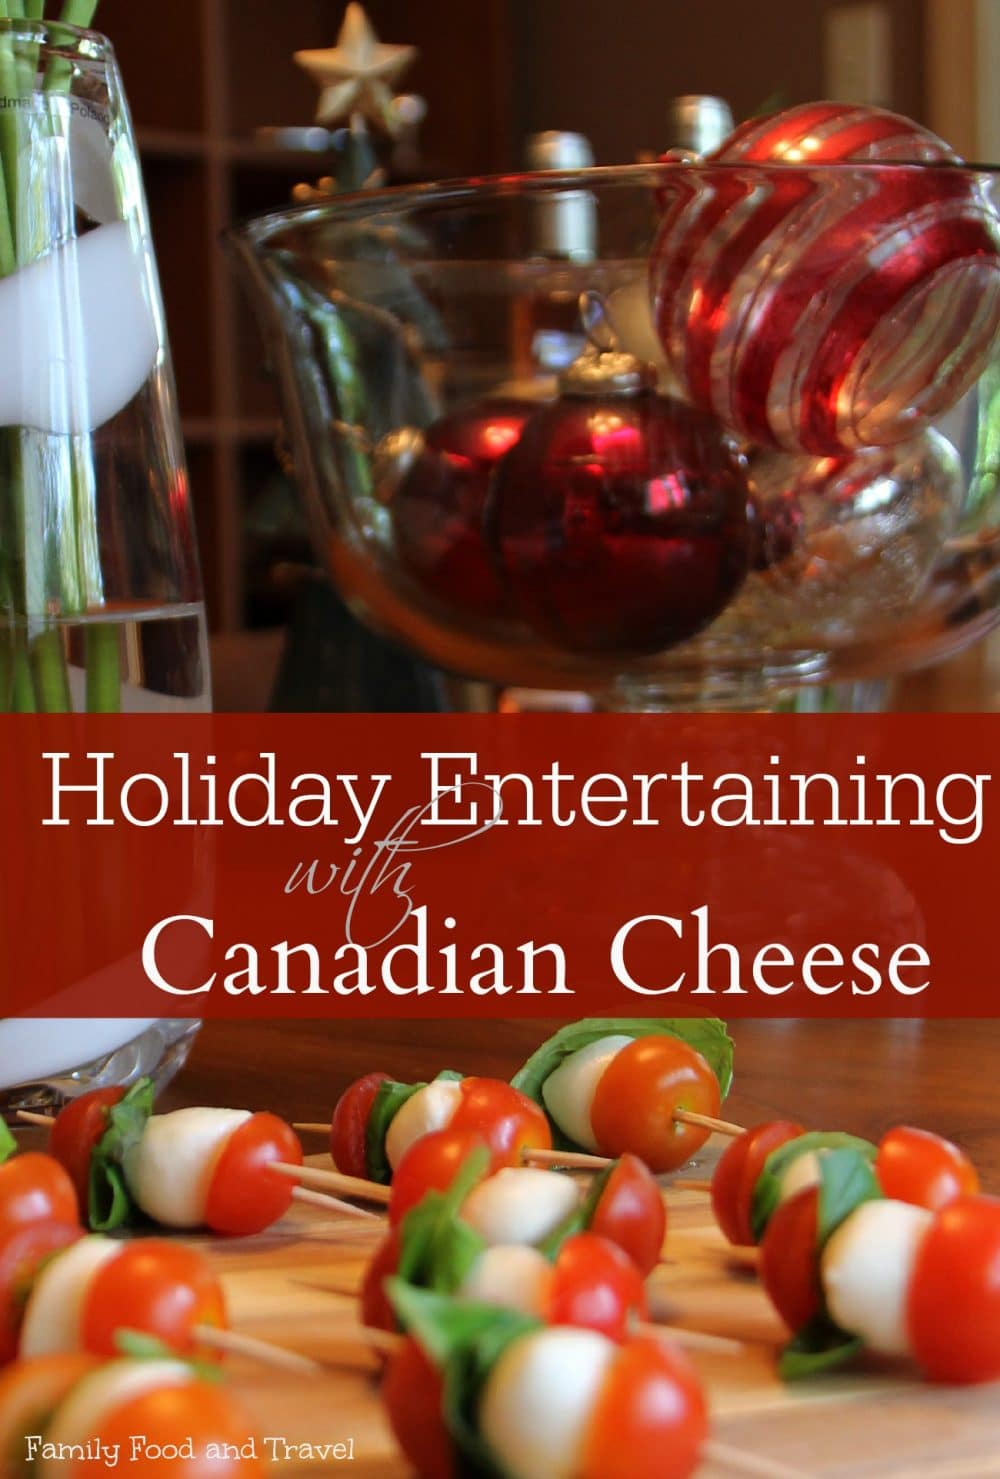 Canadian Cheese Holiday 7